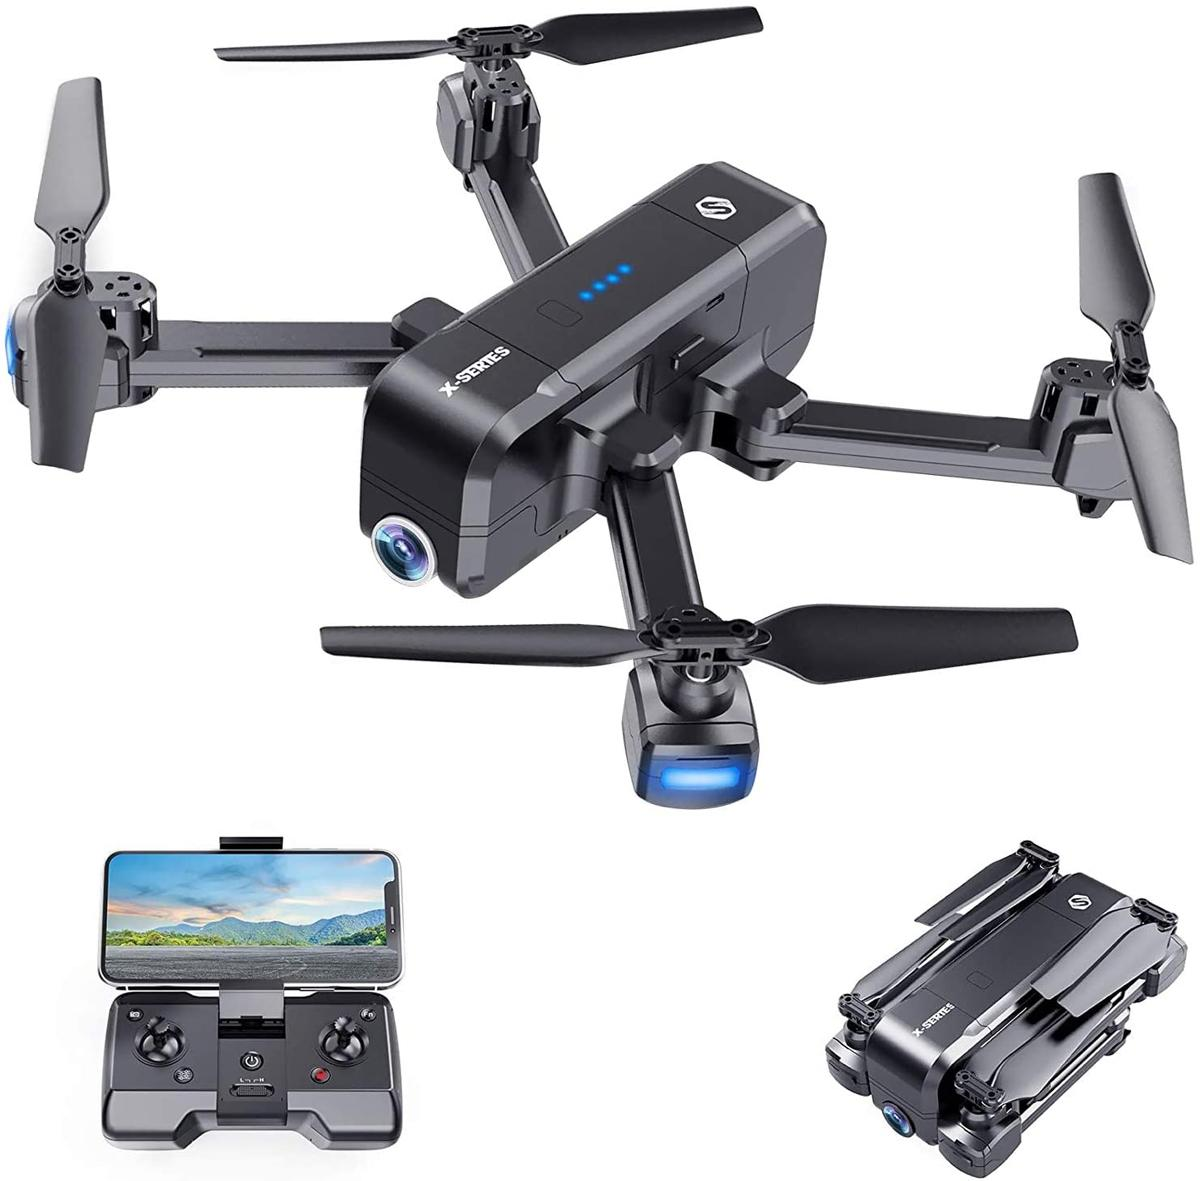 Sanrock X103W Quadcopter Drone for $49.99 Shipped